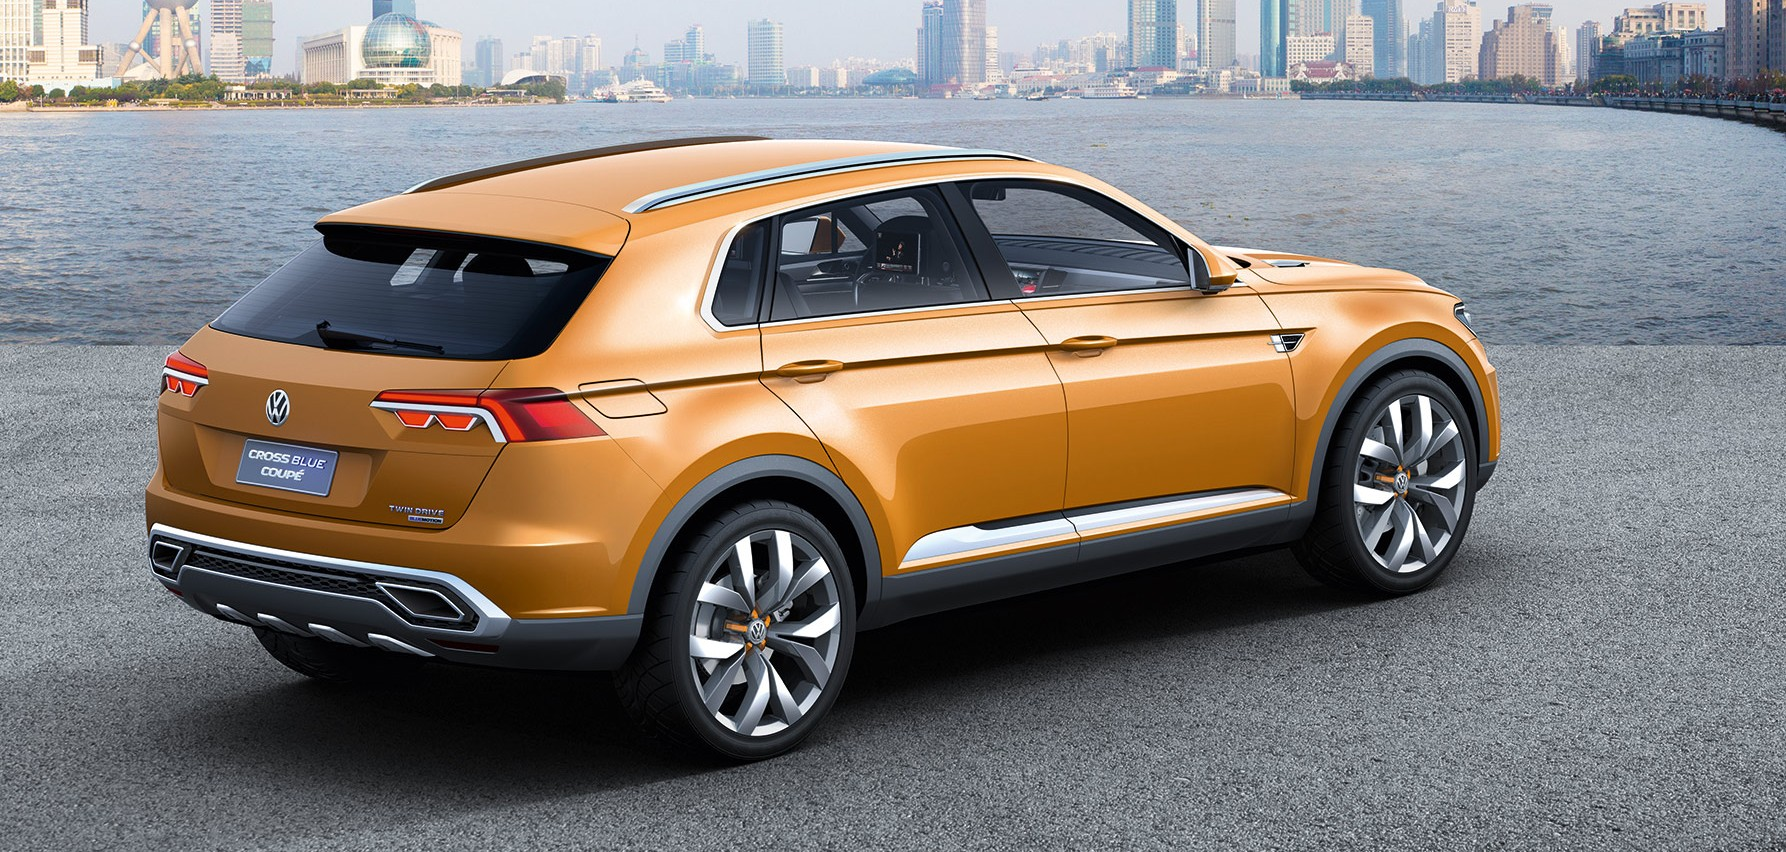 volkswagen-crossblue-coupe-concept-007